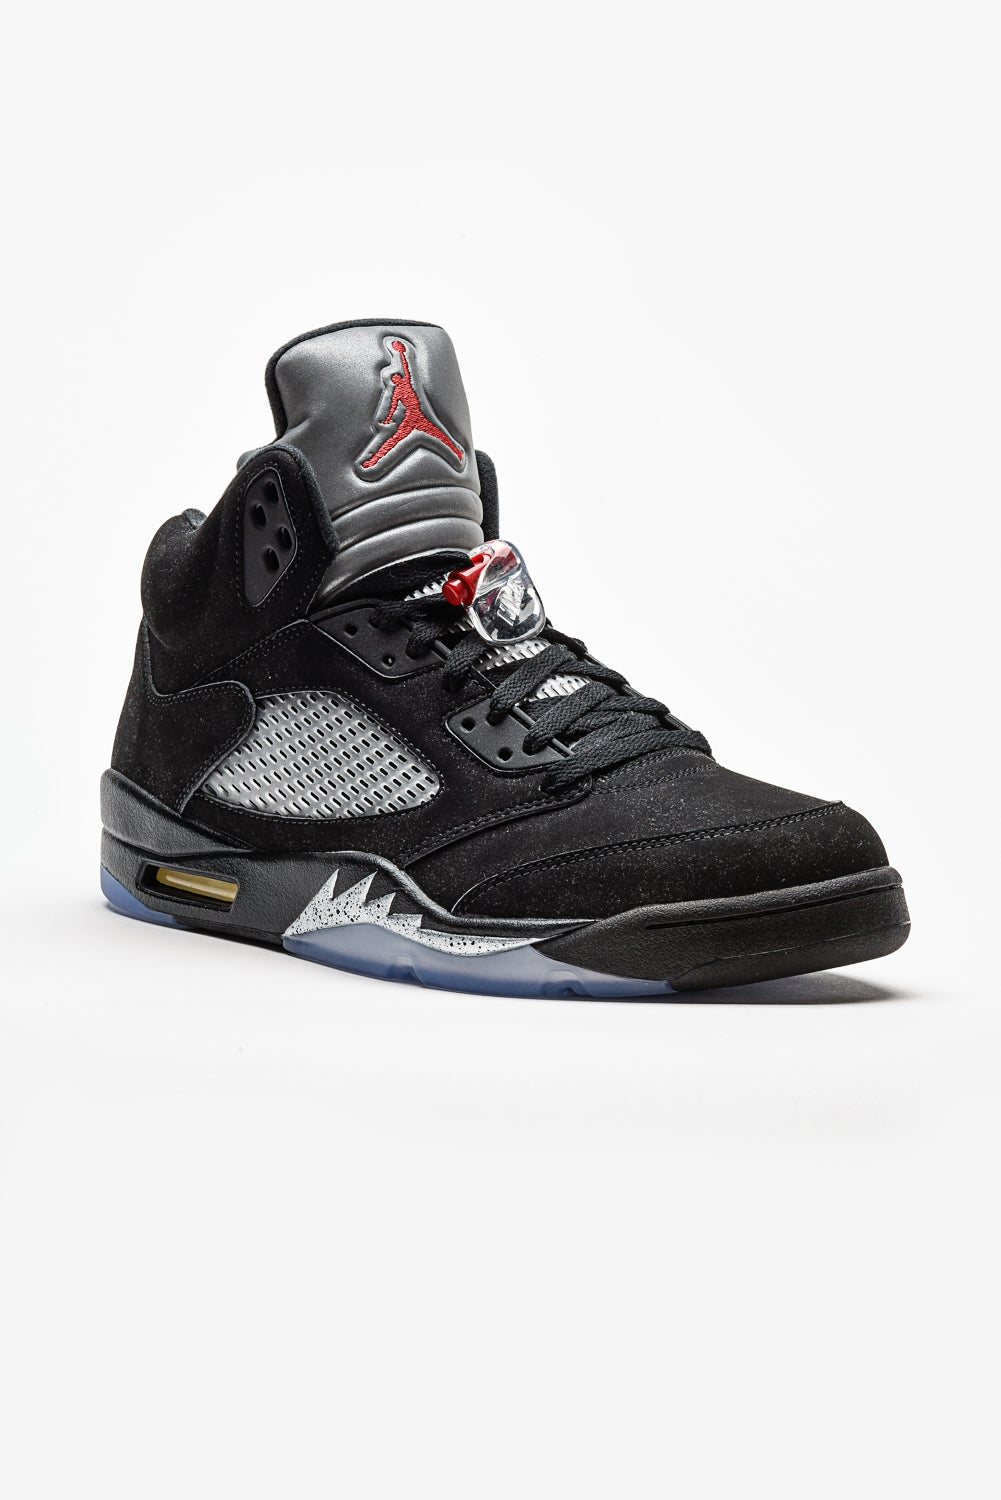 huge discount 3afc9 8d550 Image of Air Jordan 5 Retro - Black Metallic